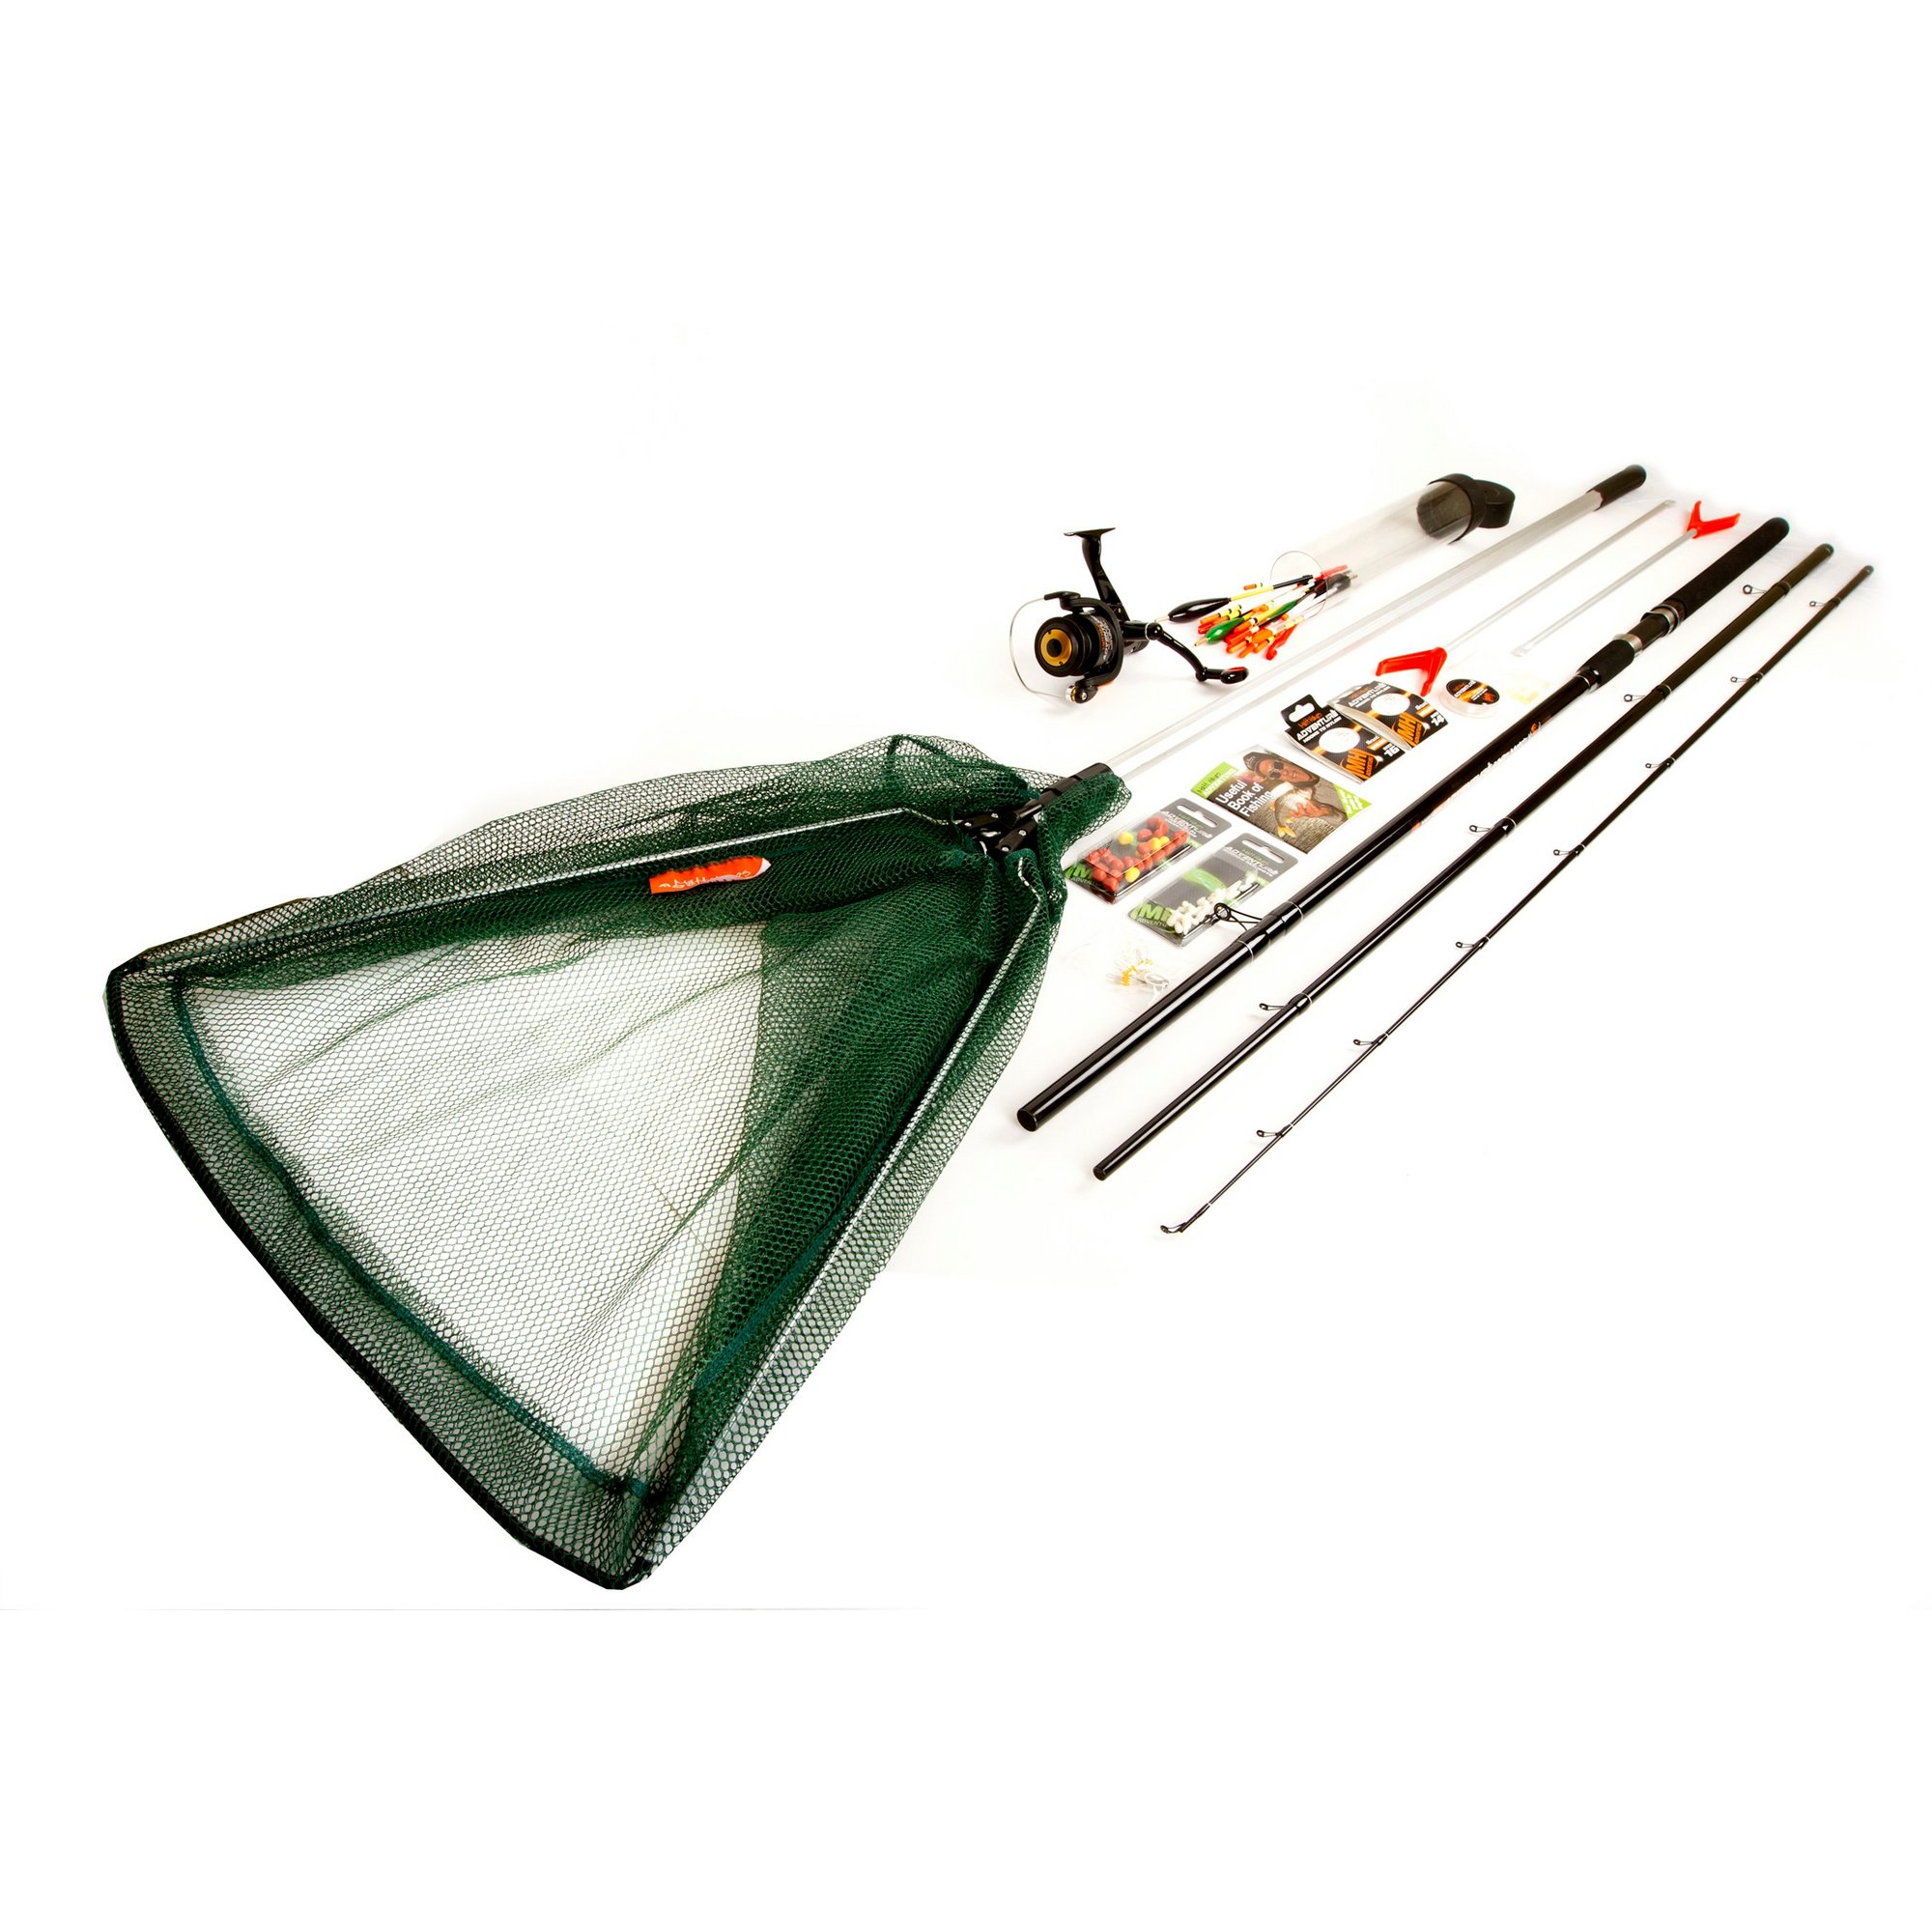 Image of Matt Hayes Coarse Kit with Net&#44 Rods and Accessories